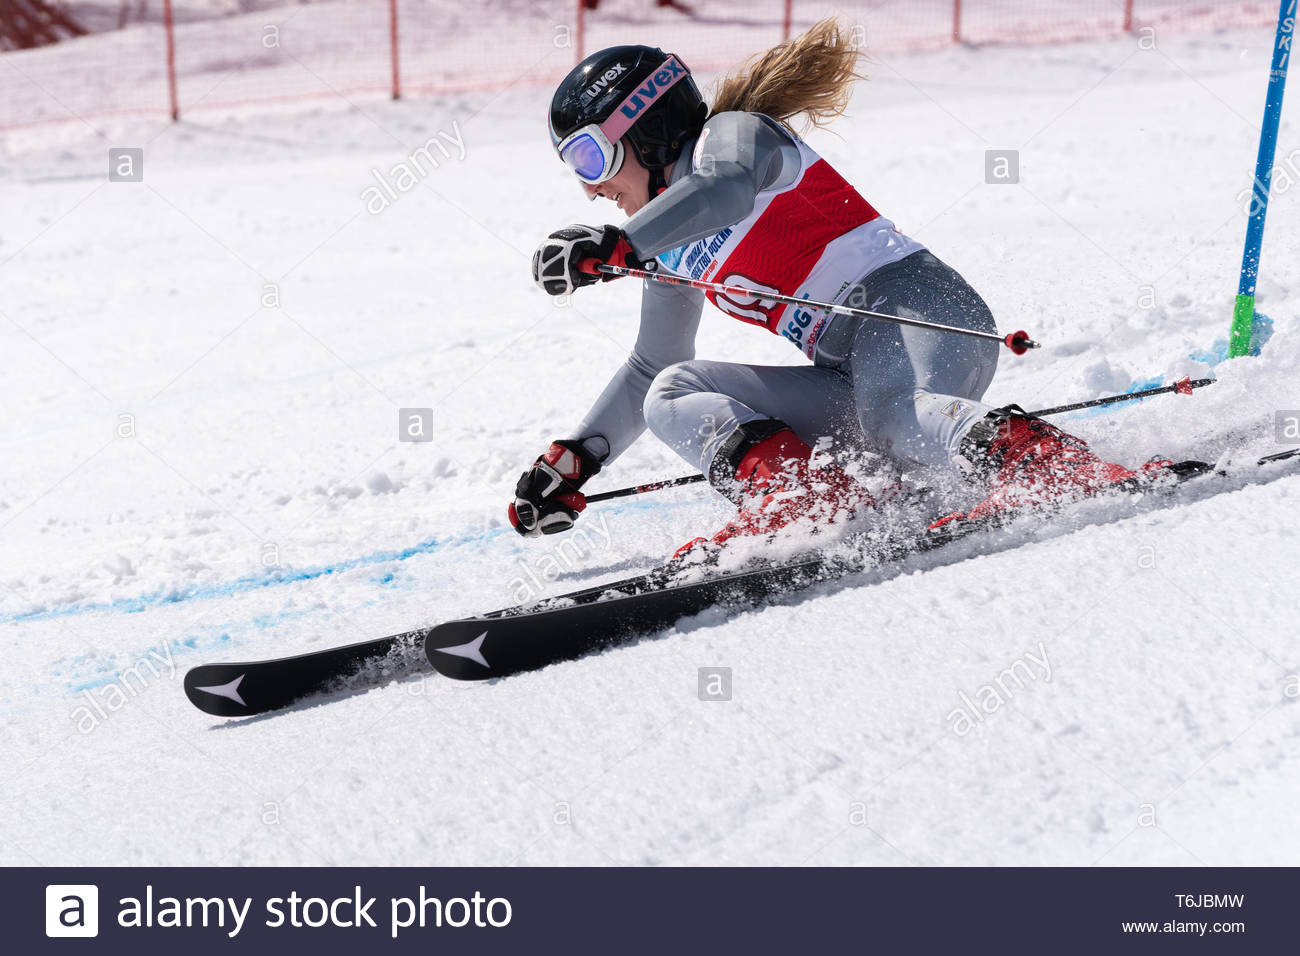 KAMCHATKA PENINSULA, RUSSIAN FEDERATION - APRIL 1, 2019: Mountain skier Milena Fokina (Kamchatka Peninsula) skiing down snowy mountain slope. Russian  - Stock Image